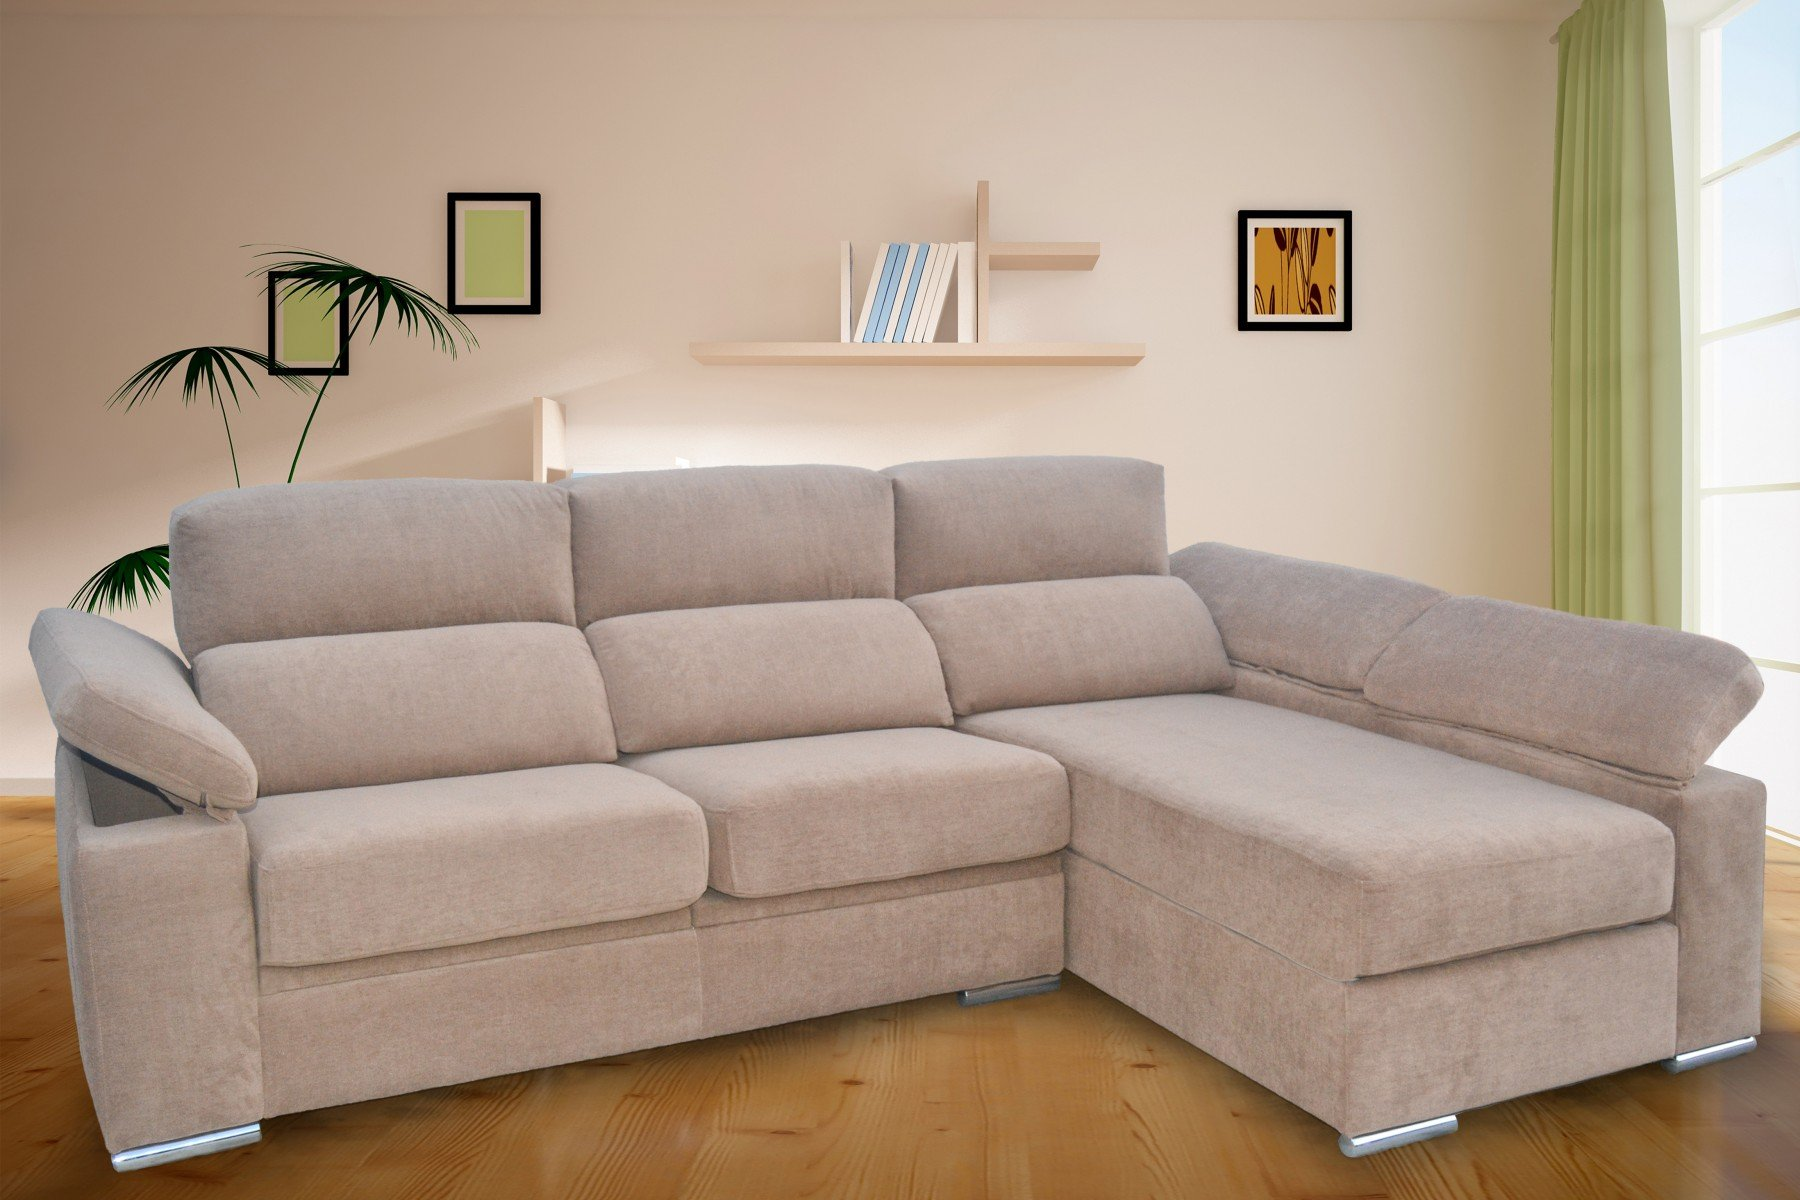 Sof s kal 03 sofas chaise longue sofas cama sillones for Sofas reclinables baratos